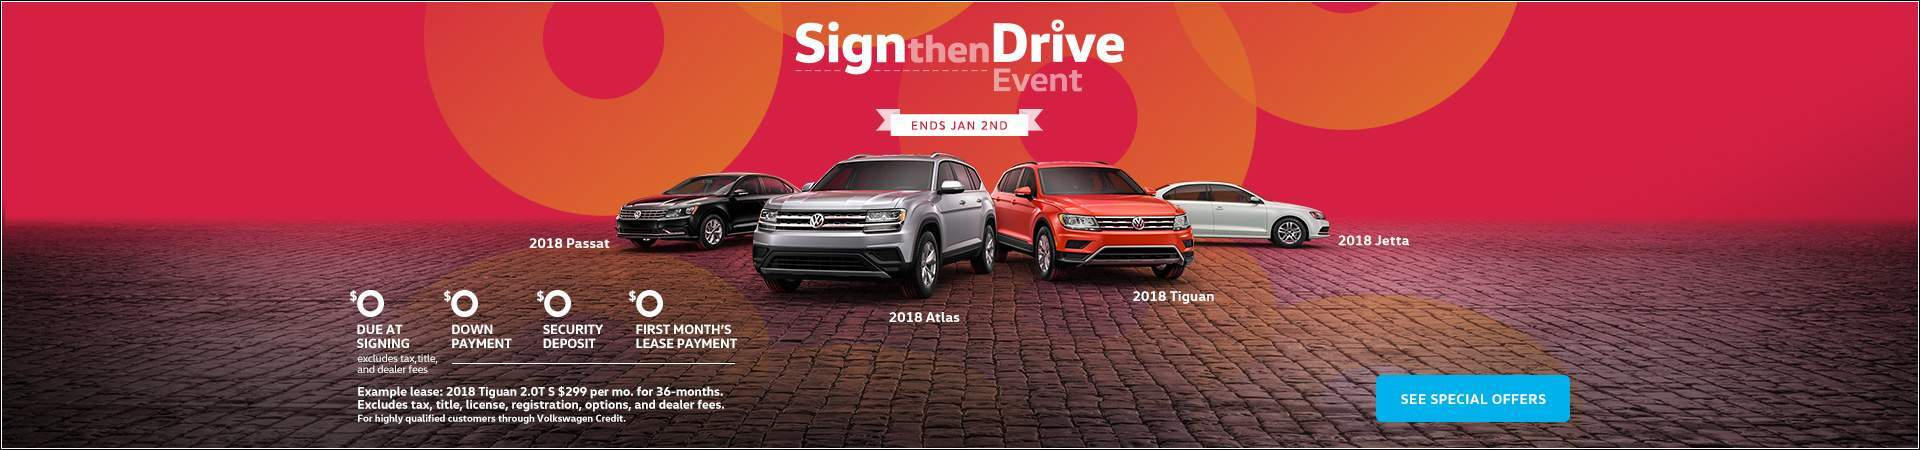 Sign and Drive Event